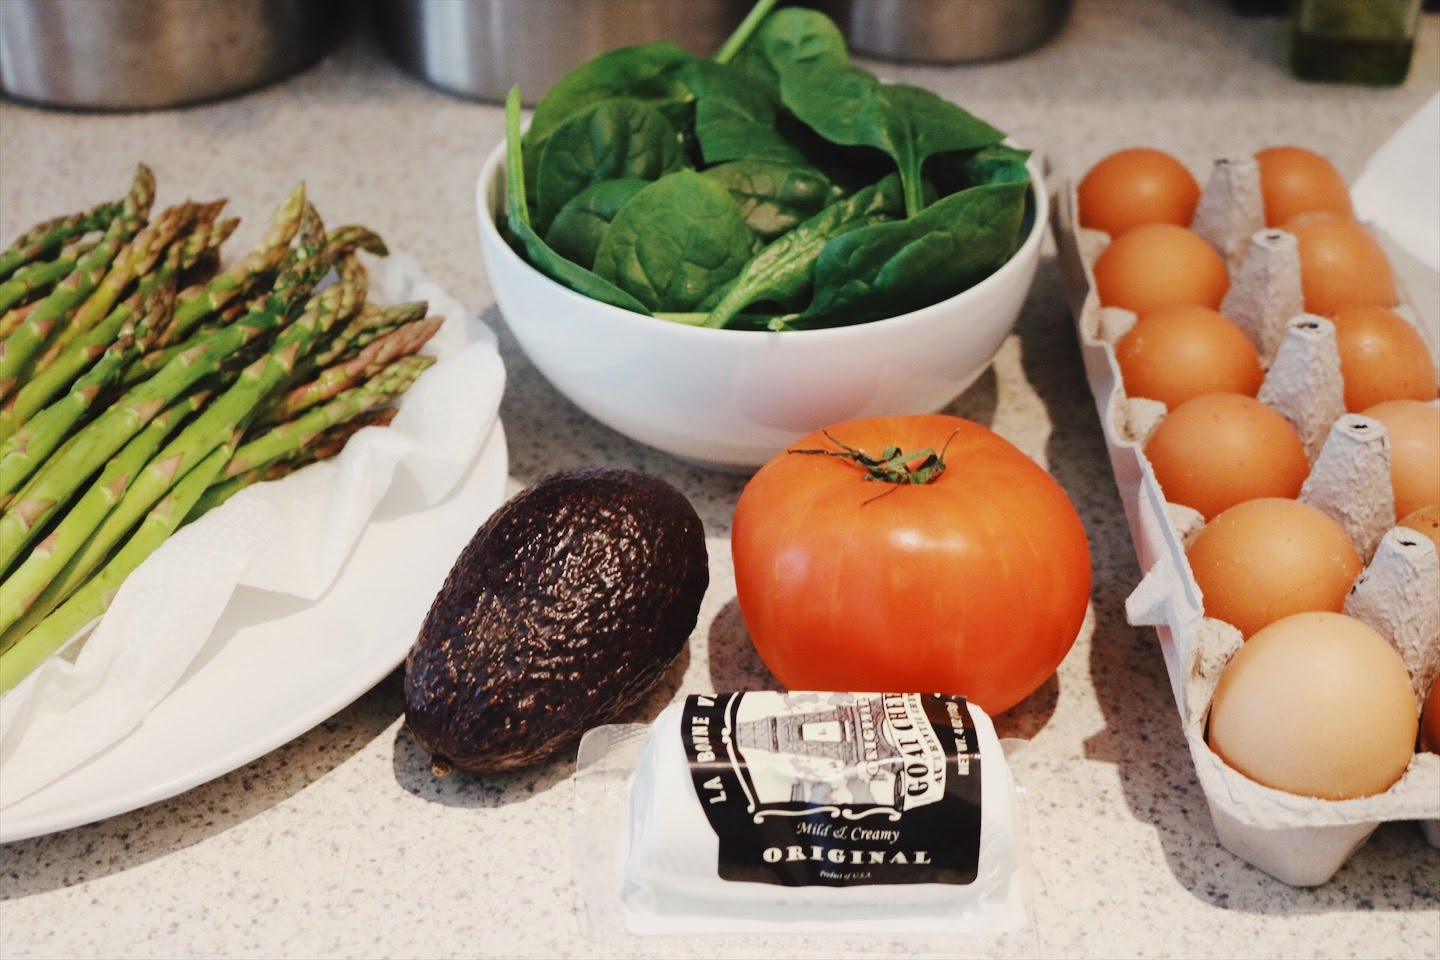 Beautiful ingredients make for a tasty meal!